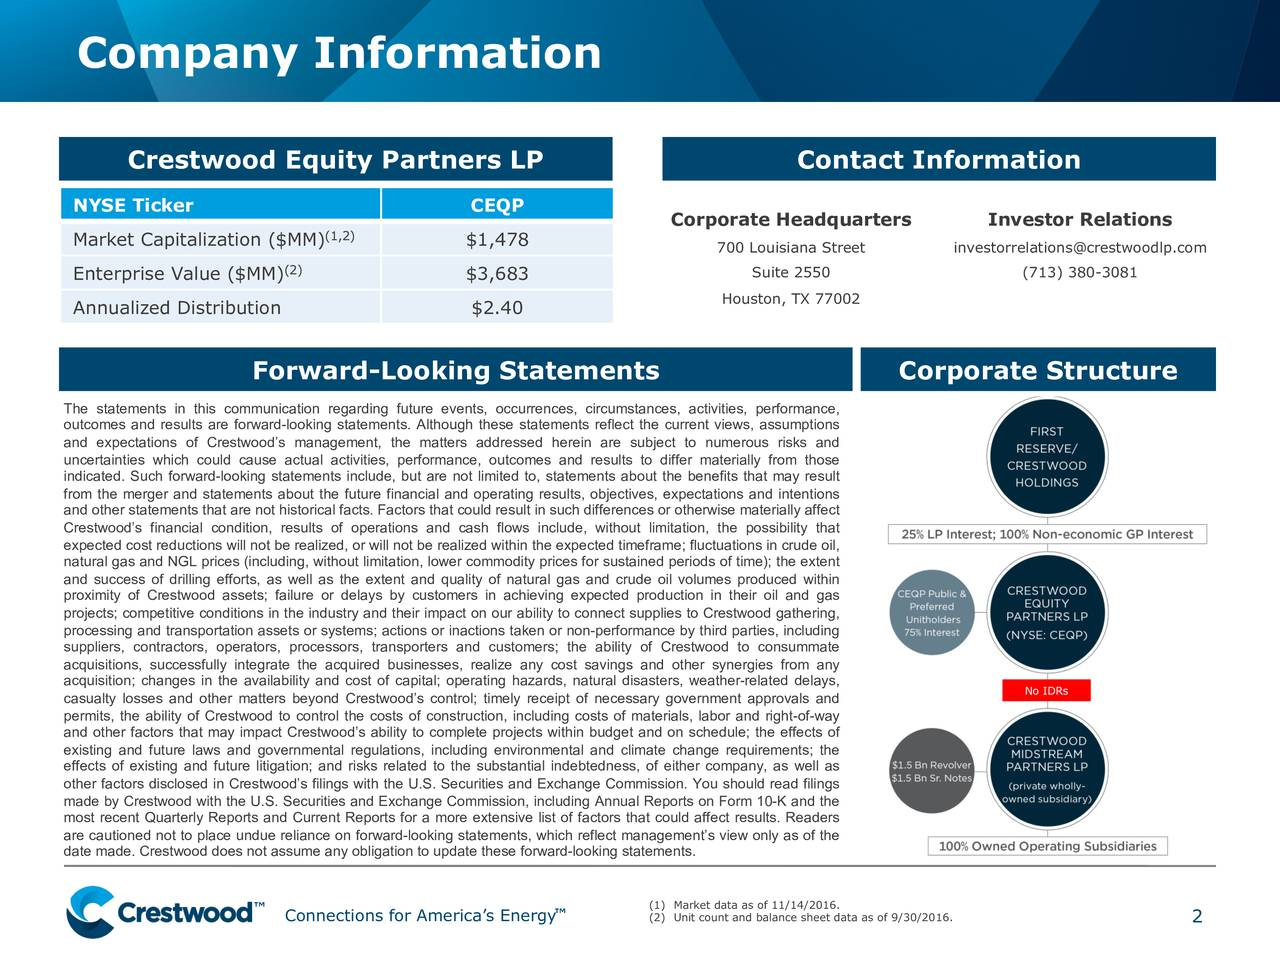 Crestwood Equity Partners LP Contact Information NYSE Ticker CEQP Corporate Headquarters Investor Relations (1,2) Market Capitalization ($MM) $1,478 700 Louisiana Street investorrelations@crestwoodlp.com (2) Enterprise Value ($MM) $3,683 Suite 2550 (713) 380-3081 Houston, TX 77002 Annualized Distribution $2.40 Forward-Looking Statements Corporate Structure The statements in this communication regarding future events, occurrences, circumstances, activities, performance, outcomes and results are forward-looking statements. Although these statements reflect the current views, assumptions and expectations of Crestwoods management, the matters addressed herein are subject to numerous risks and uncertainties which could cause actual activities, performance, outcomes and results to differ materially from those indicated. Such forward-looking statements include, but are not limited to, statements about the benefits that may result from the merger and statements about the future financial and operating results, objectives, expectations and intentions and other statements that are not historical facts. Factors that could result in such differences or otherwise materially affect Crestwoods financial condition, results of operations and cash flows include, without limitation, the possibility that expected cost reductions will not be realized, or will not be realized within the expected timeframe; fluctuations in crude oil, natural gas and NGL prices (including, without limitation, lower commodity prices for sustained periods of time); the extent and success of drilling efforts, as well as the extent and quality of natural gas and crude oil volumes produced within proximity of Crestwood assets; failure or delays by customers in achieving expected production in their oil and gas projects; competitive conditions in the industry and their impact on our ability to connect supplies to Crestwood gathering, processing and transportation assets or systems; actions or inactions taken or 